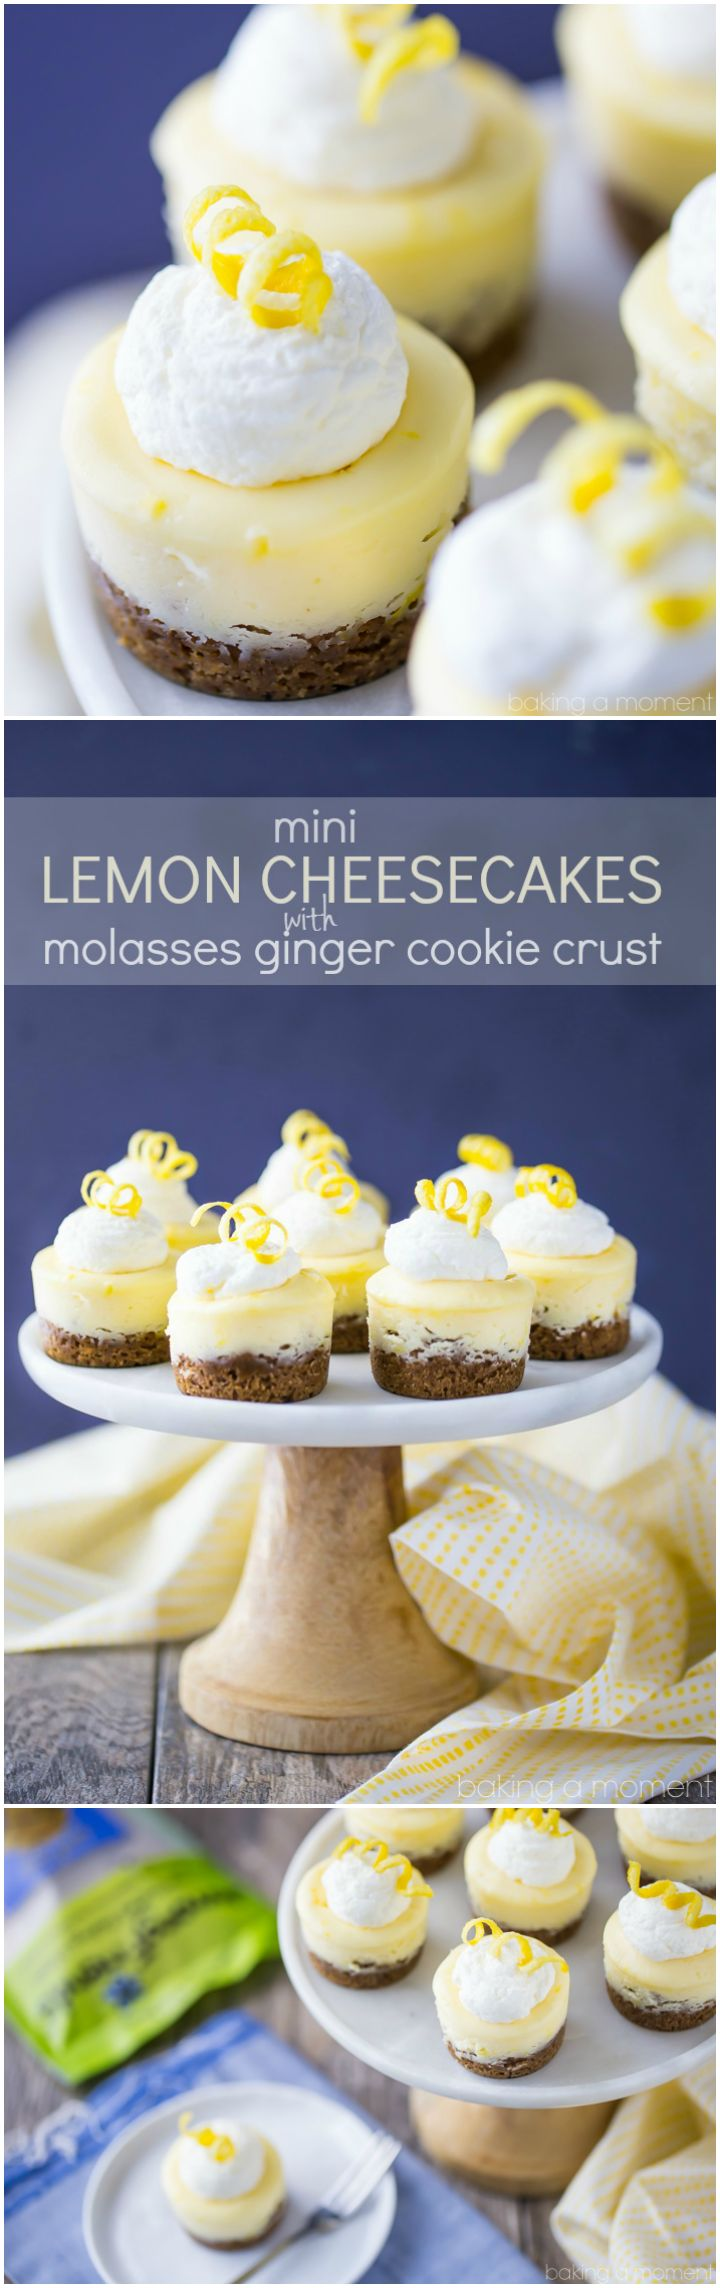 Mini Lemon Cheesecakes with Ginger Cookie Crust